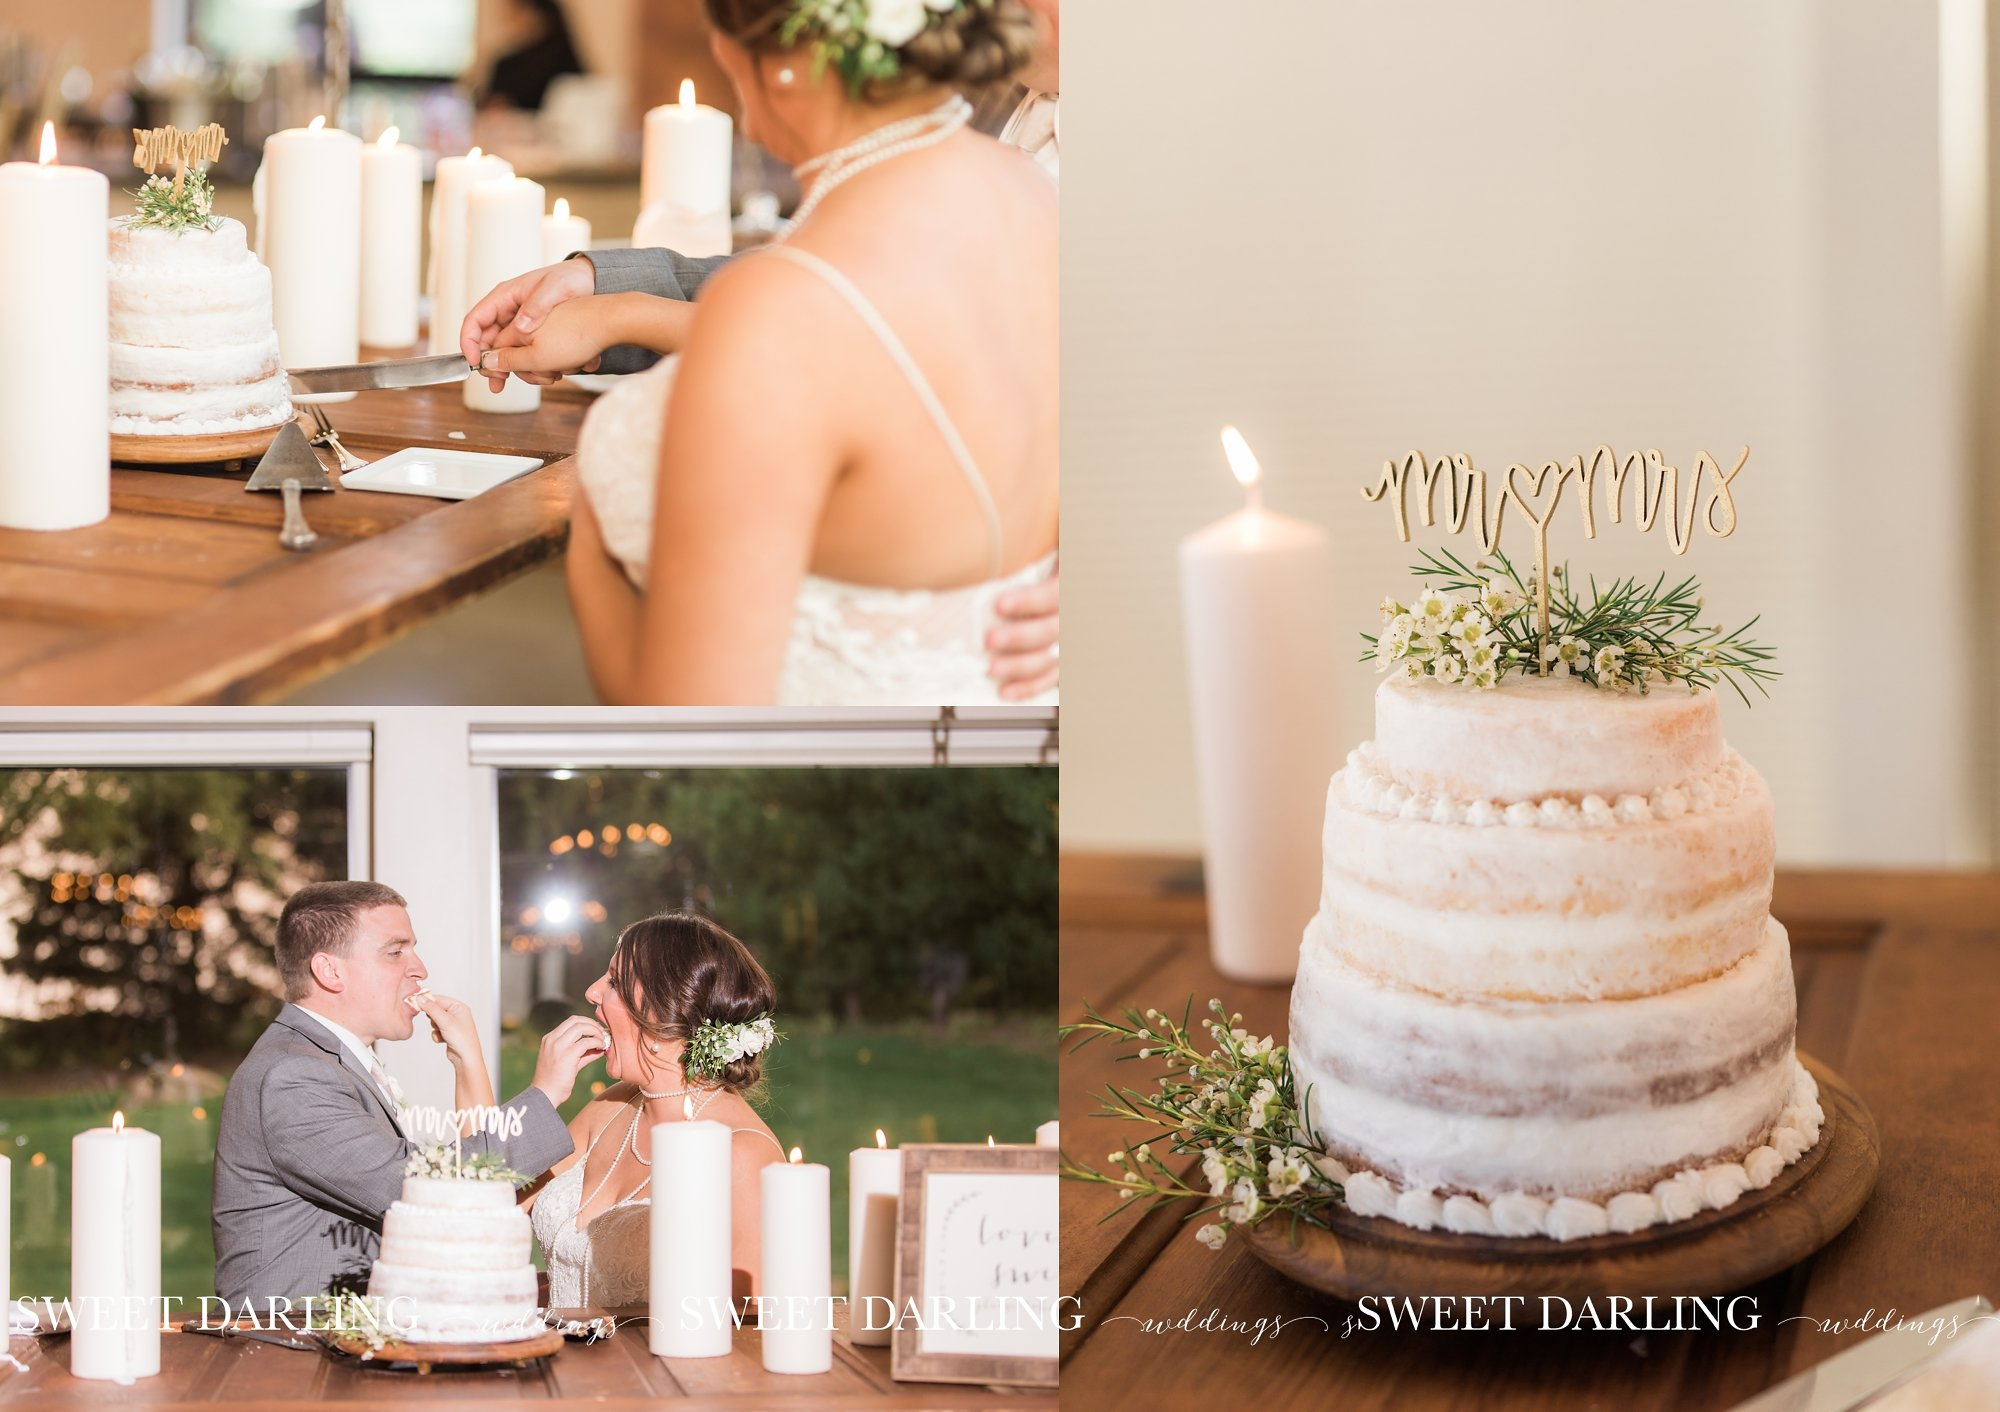 Cake cutting with white cake and candles